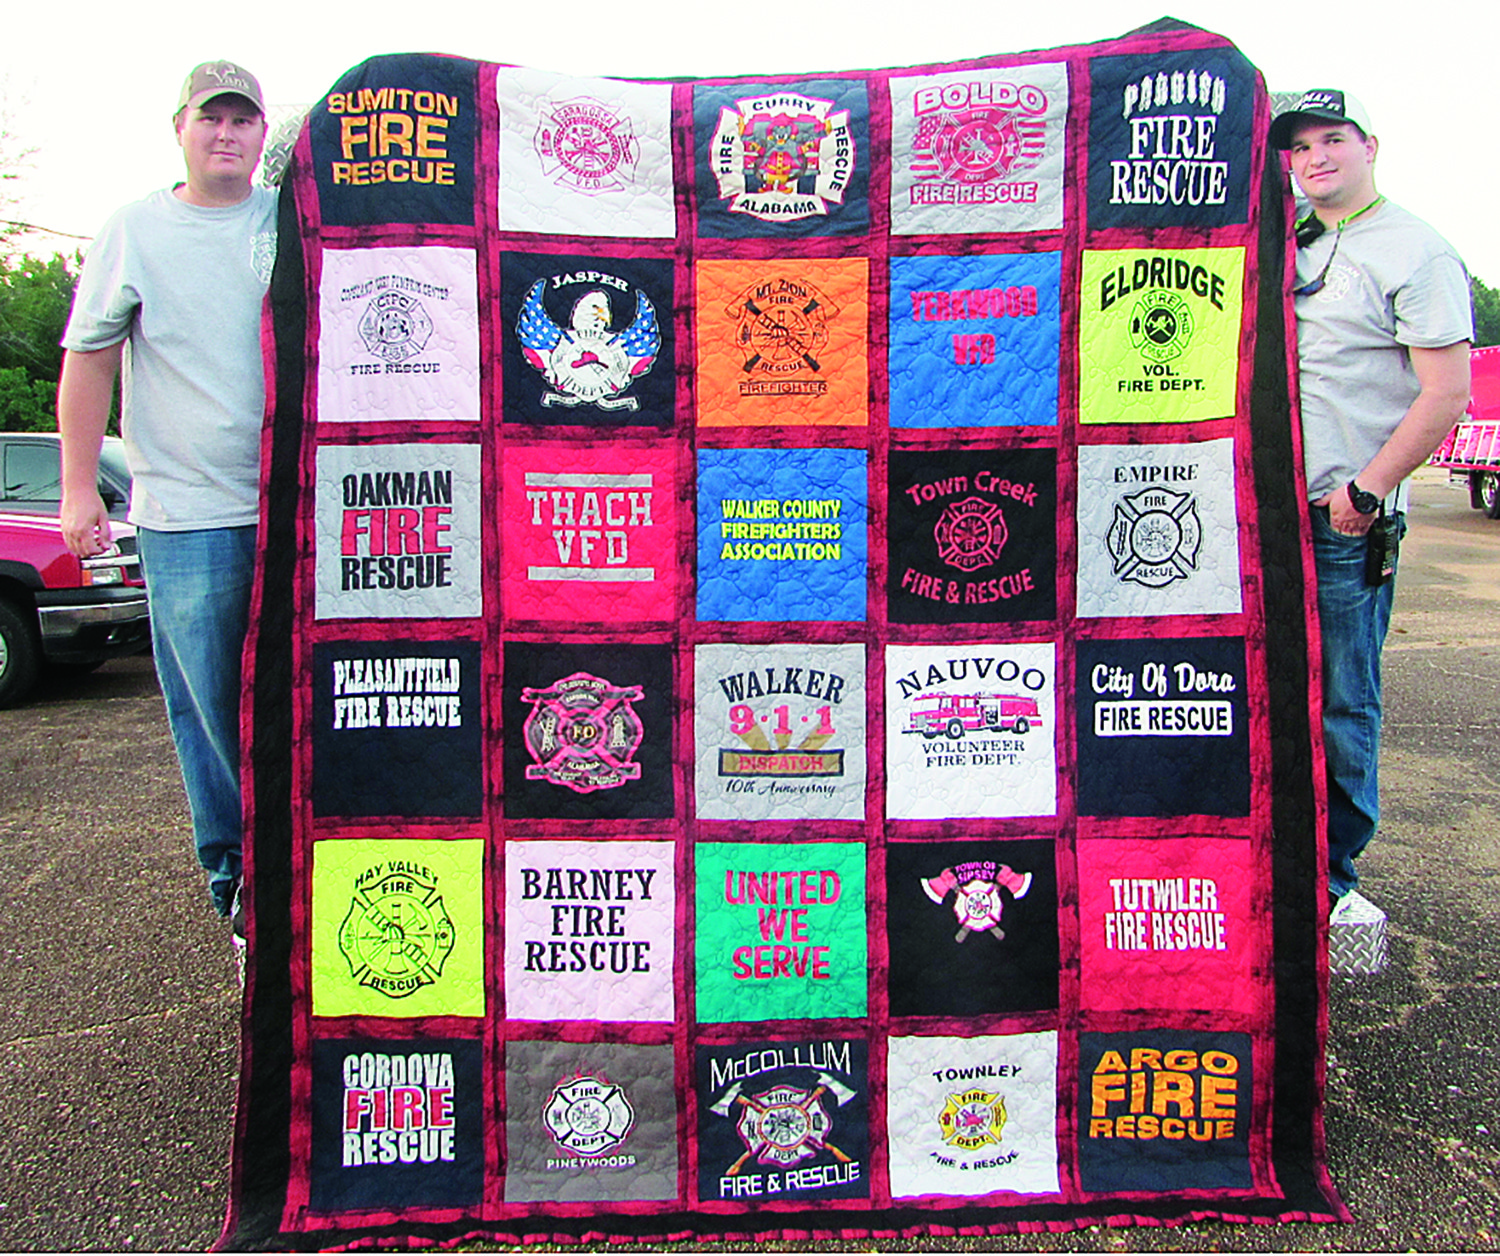 The Oakman Volunteer Fire Department was the lucky winner of the Walker County Firefighters Association beautiful T-shirt quilt. The quilt, which featured T-shirts from all 27 Fire Departments in Walker County, was given away during the WCFA meeting being held on Tuesday, July 10. The WCFA raised over $1,800 from the giveaway, which will be used to help fund training for all the fire departments. The WCFA would also like to thank all the ladies at Herman Baptist Church in Curry, who helped sew on the quilt  for this special fundraiser. Pictured above with the quilt are members of the Oakman Volunteer Fire Department - Fire Chief Shane Callaway and Firefighter Colt Courington.